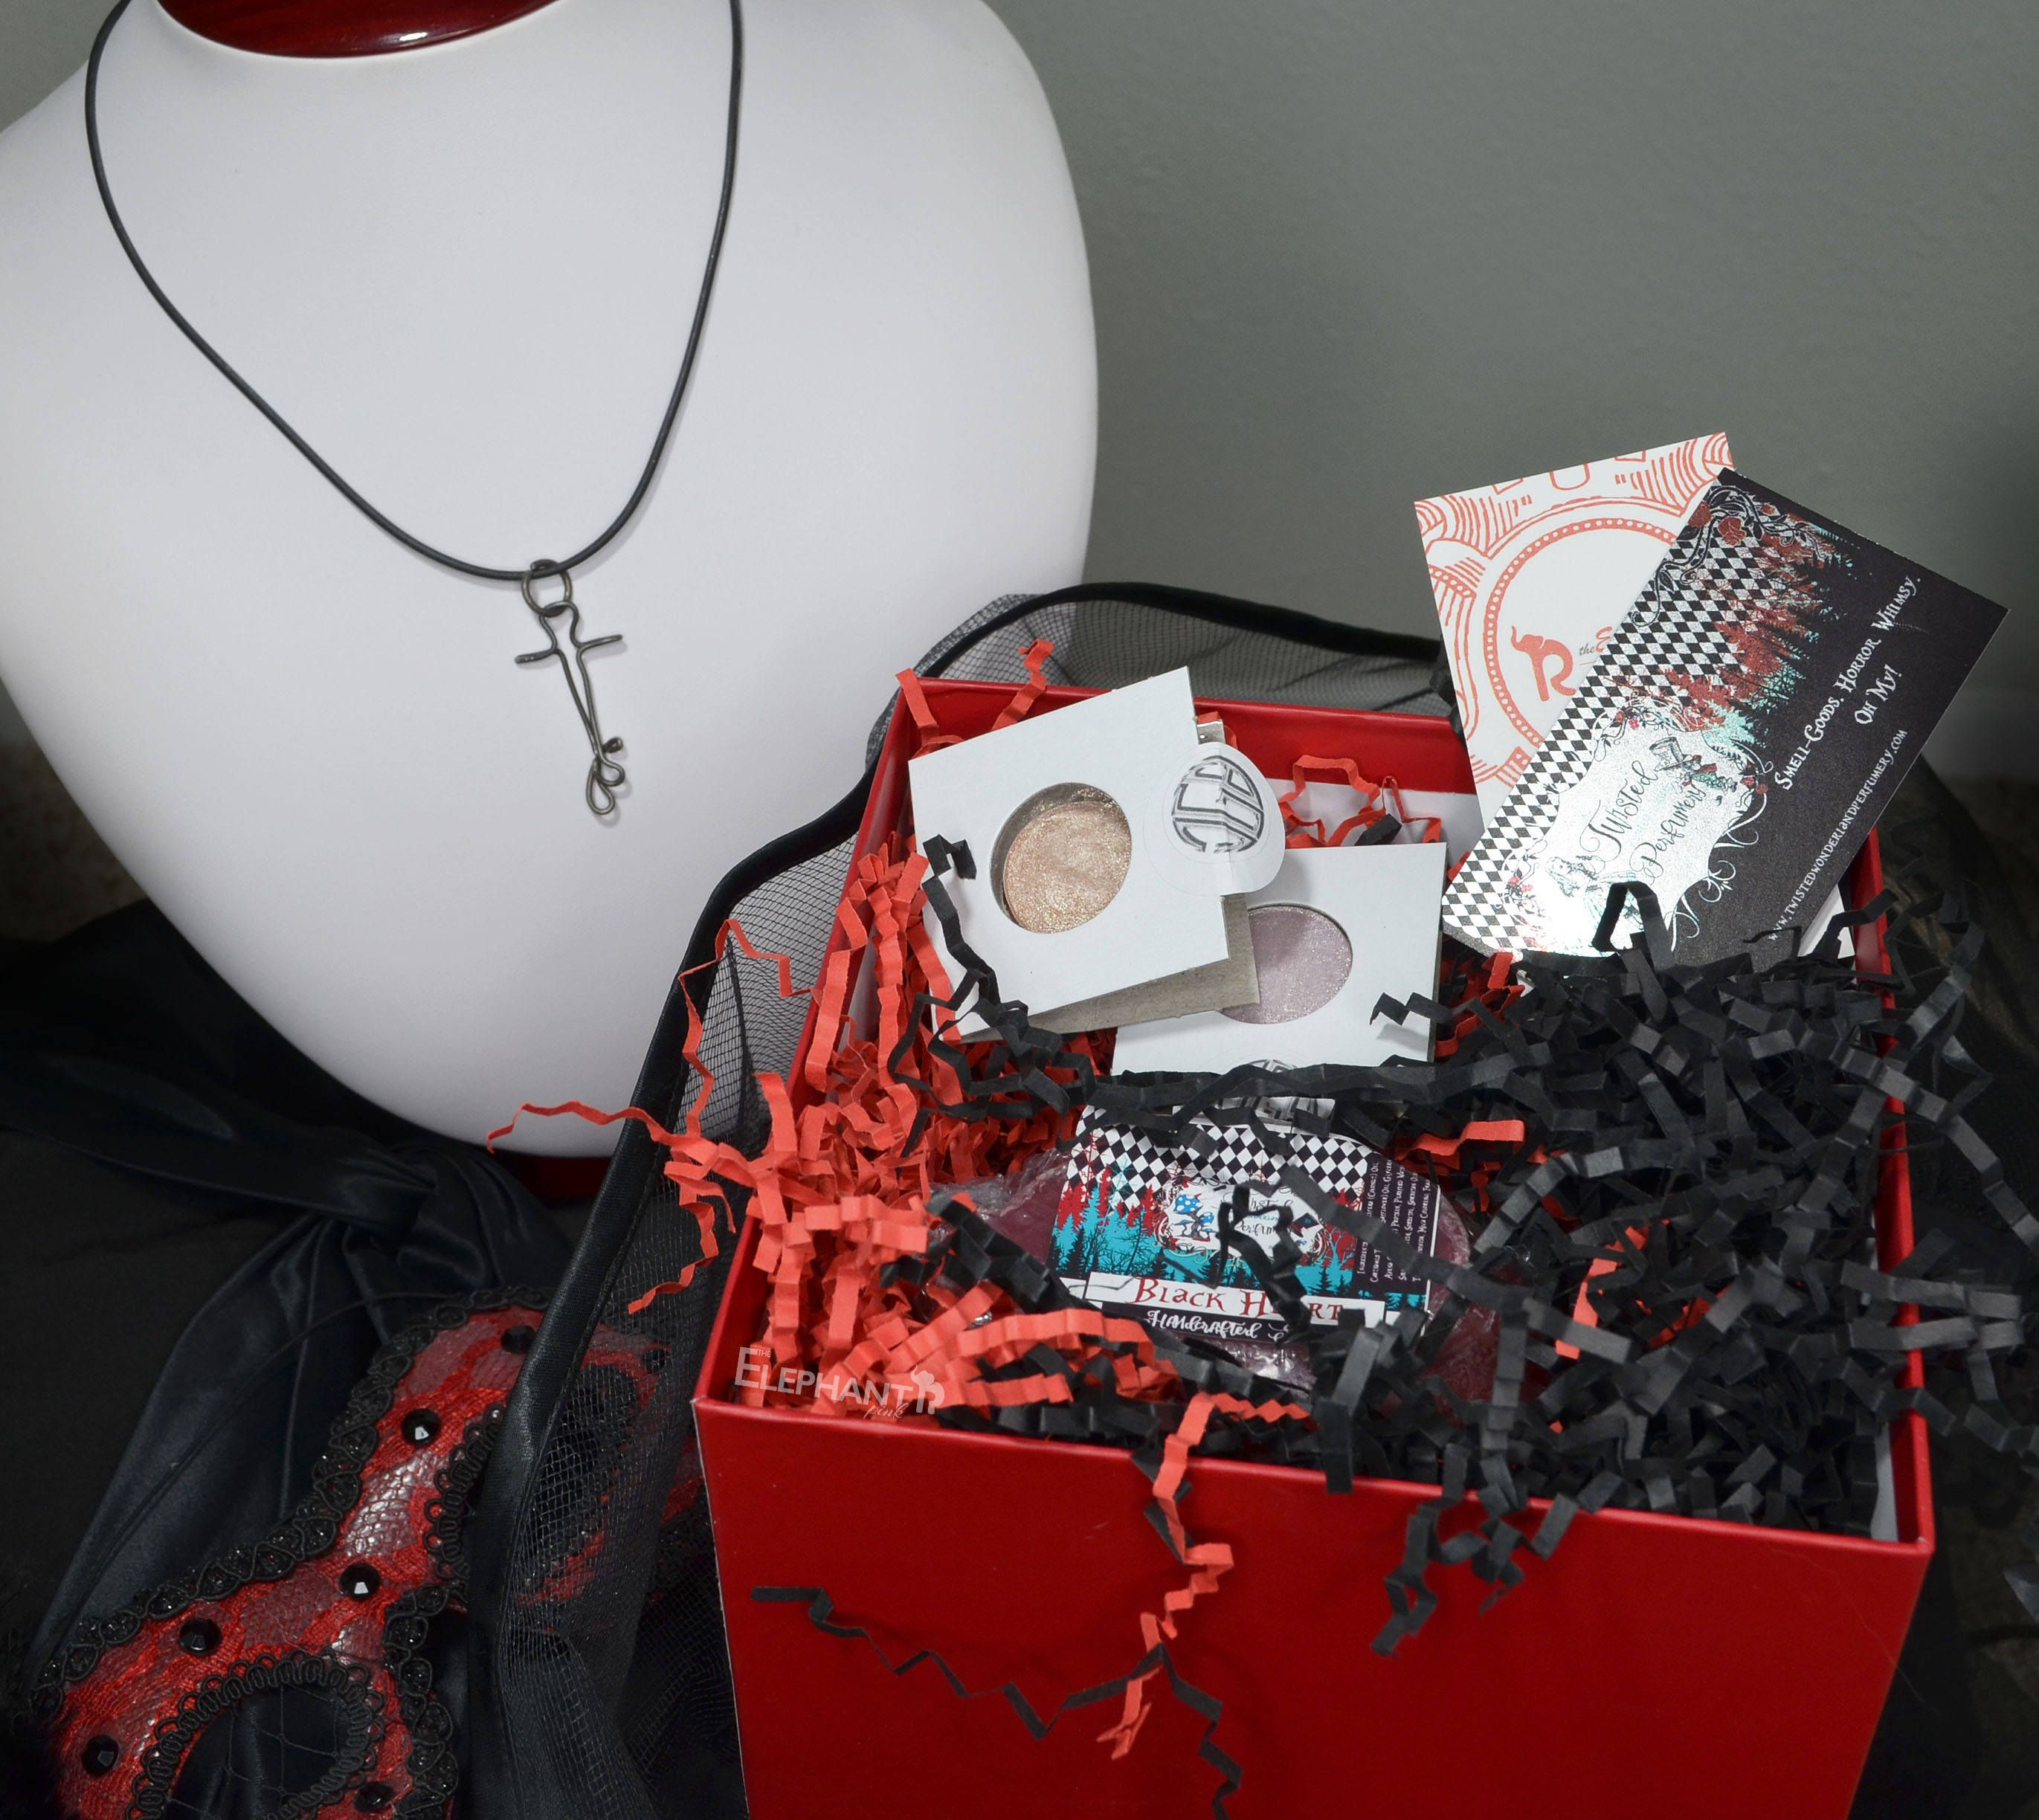 Gothic Mystery Box Beauty Box Makeup Gift For Girlfriend Jewelry Box Goth Necklace Indie Cosmetics Vegan Makeup Box Makeup Beauty Box Beauty Box Makeup Gift